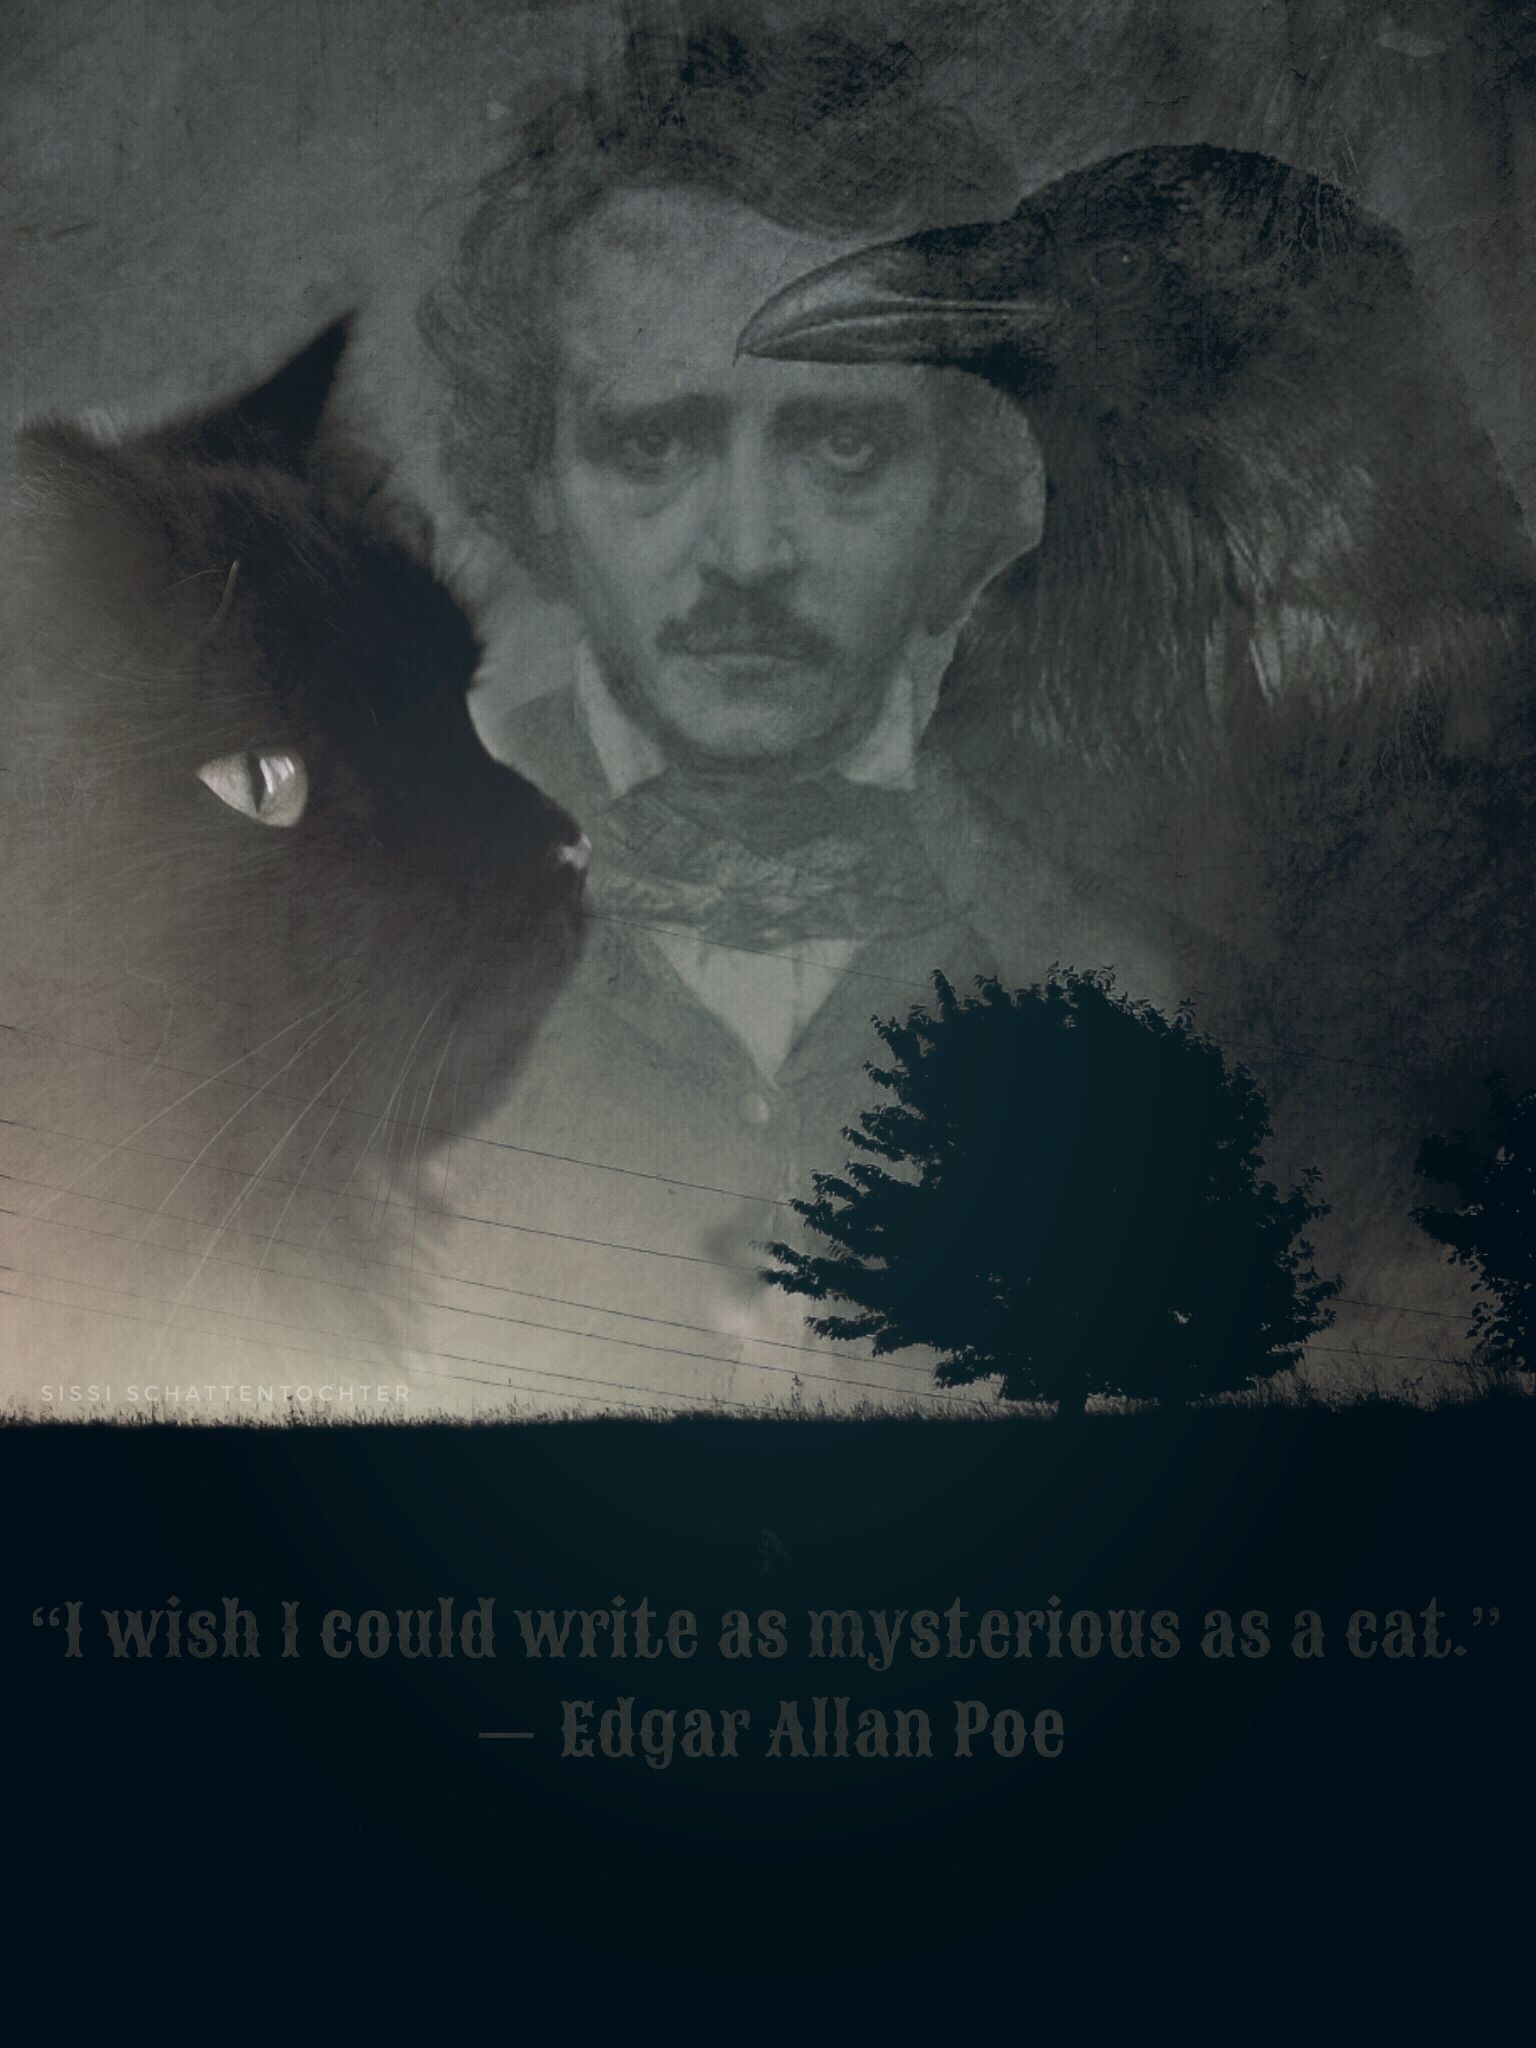 Poemas Corazon Delator Edgar Allan Poe Frases I Wish I Could Write As Mysterious As A Cat Edgar Allan Poe